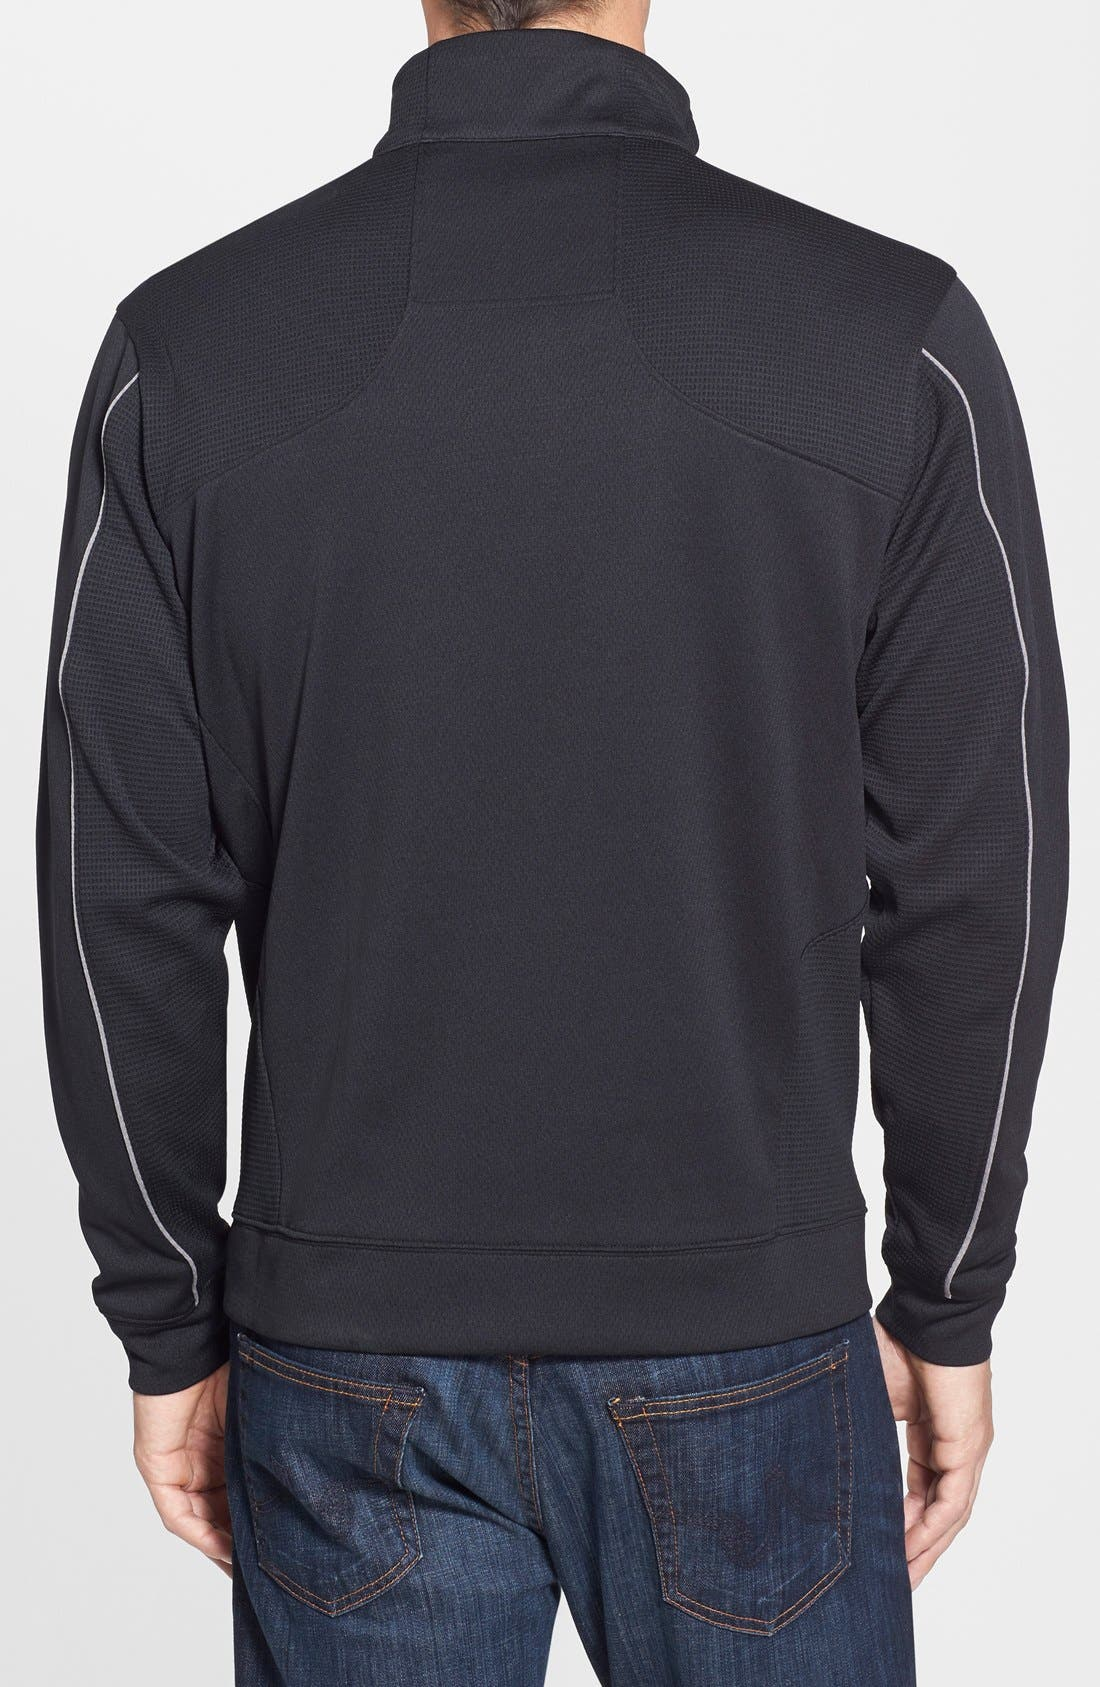 Indianapolis Colts - Edge DryTec Moisture Wicking Half Zip Pullover,                             Alternate thumbnail 2, color,                             Black